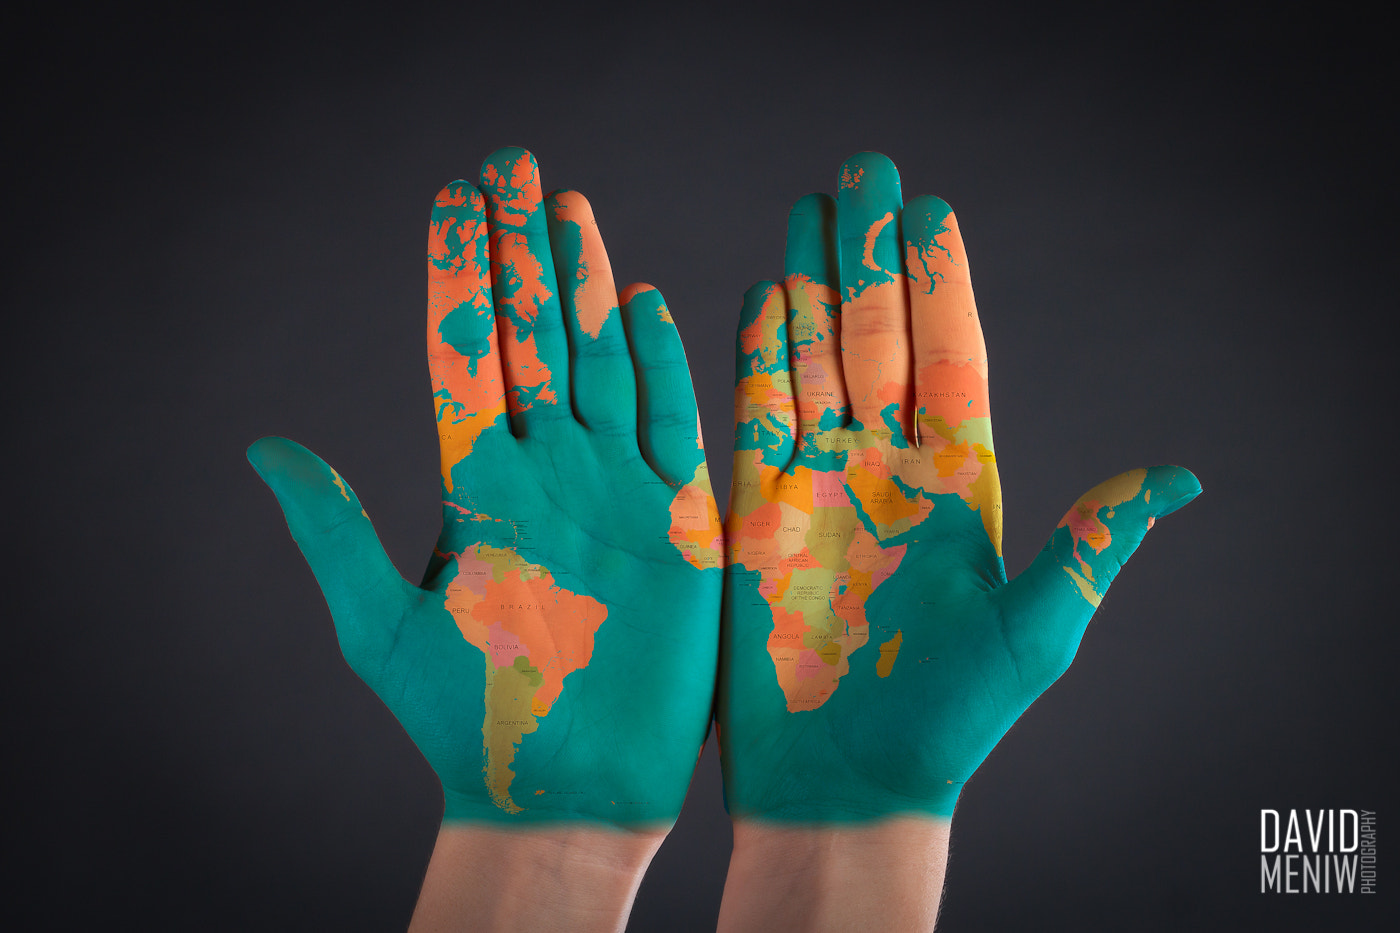 Photograph Our world in our hands by David Meniw on 500px